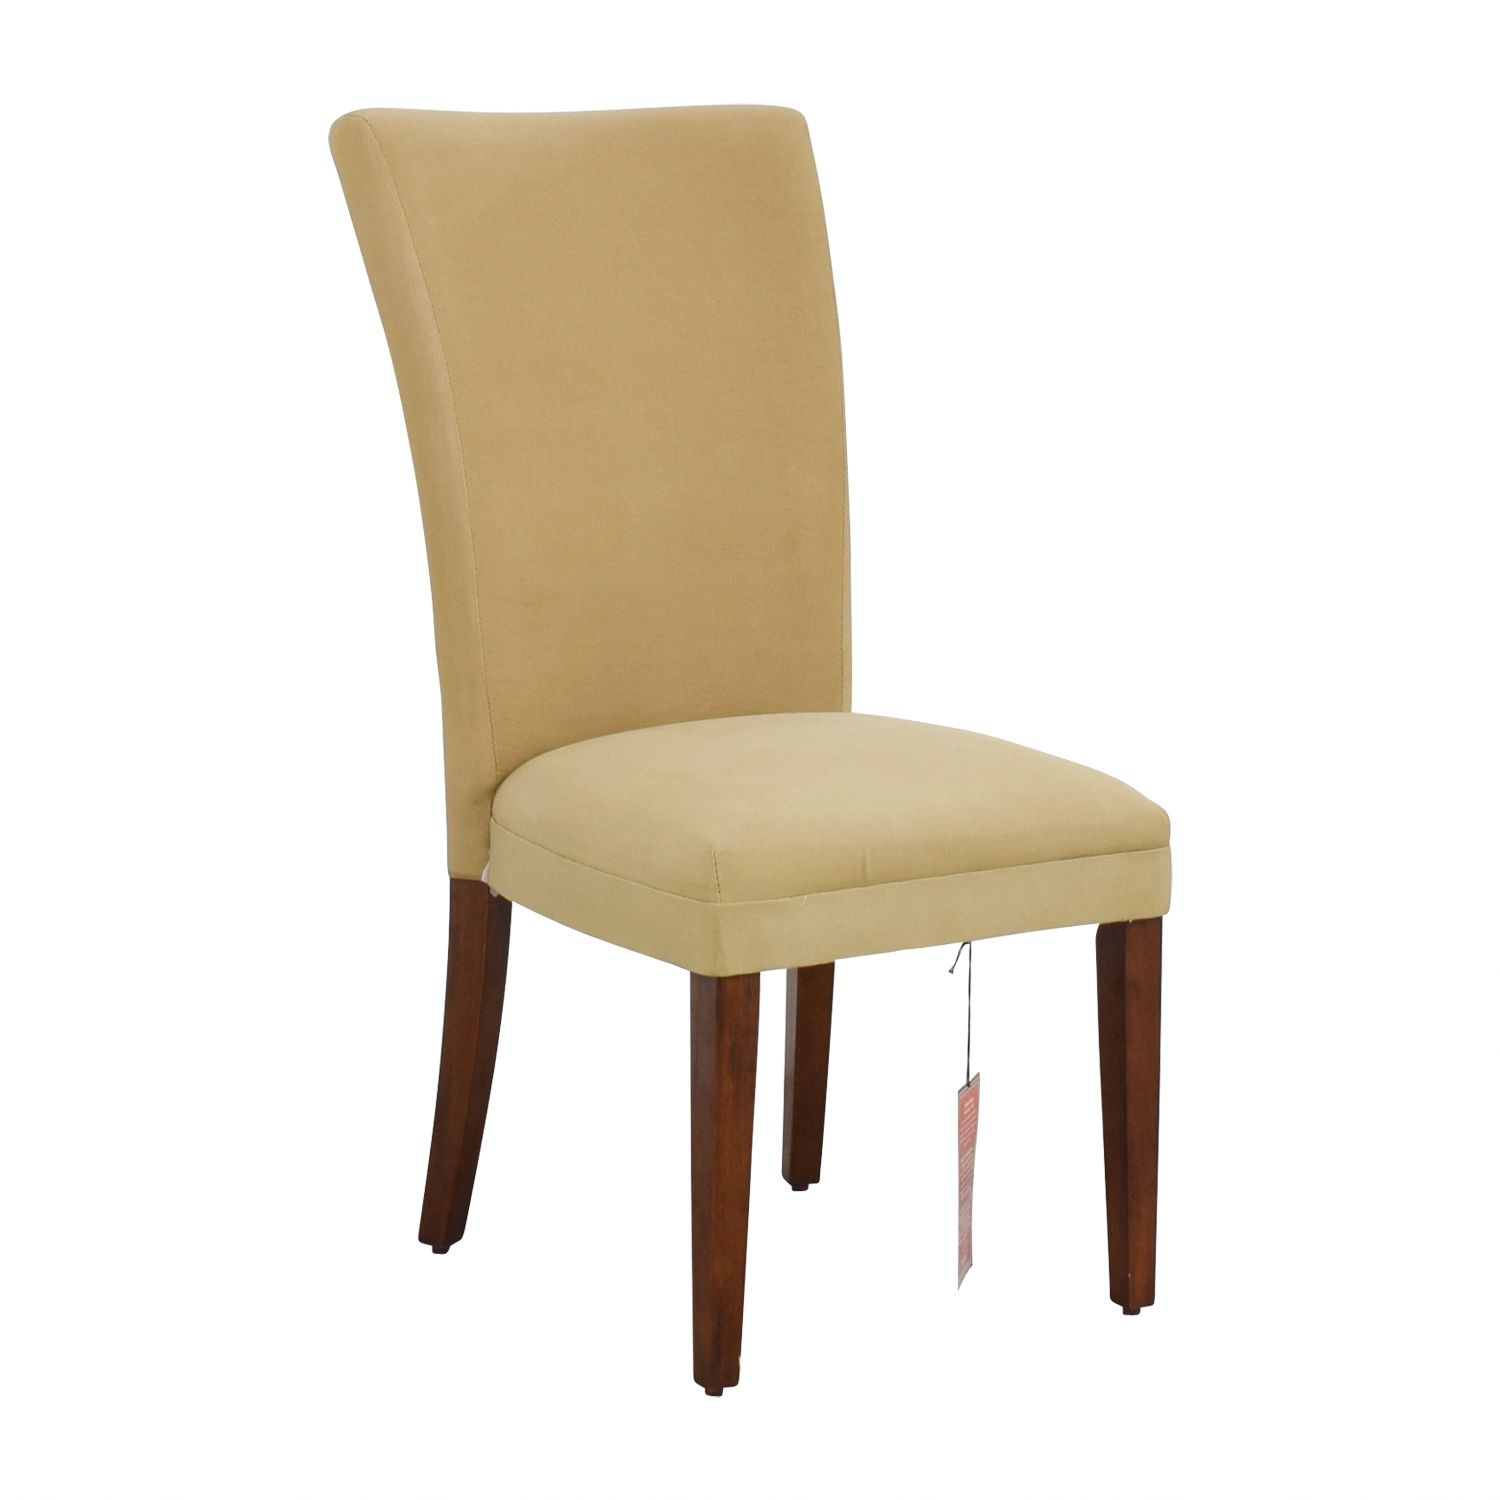 buy Coaster High Back Tan Upholstered Chair Coaster Dining Chairs